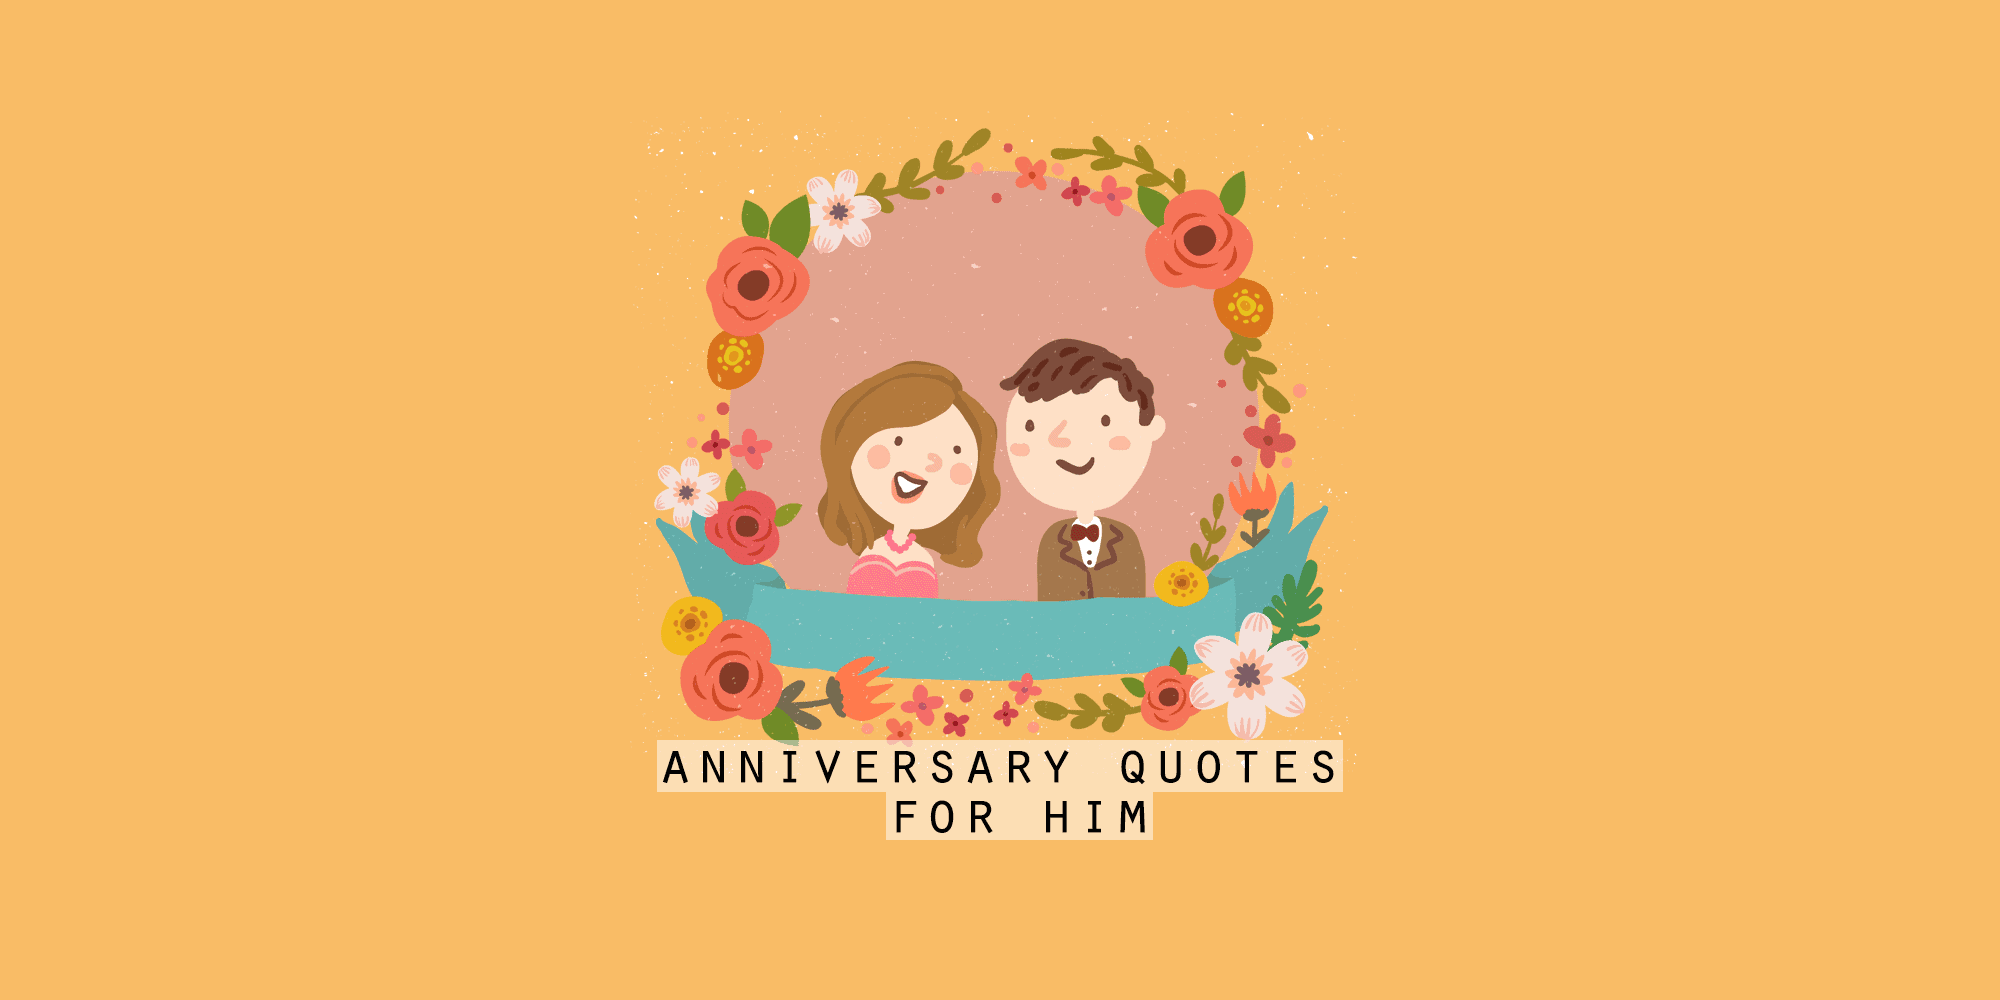 Happy Anniversary Quotes For Him: 90+ Messages from The Heart to Celebrate Time Spent Together (2020)